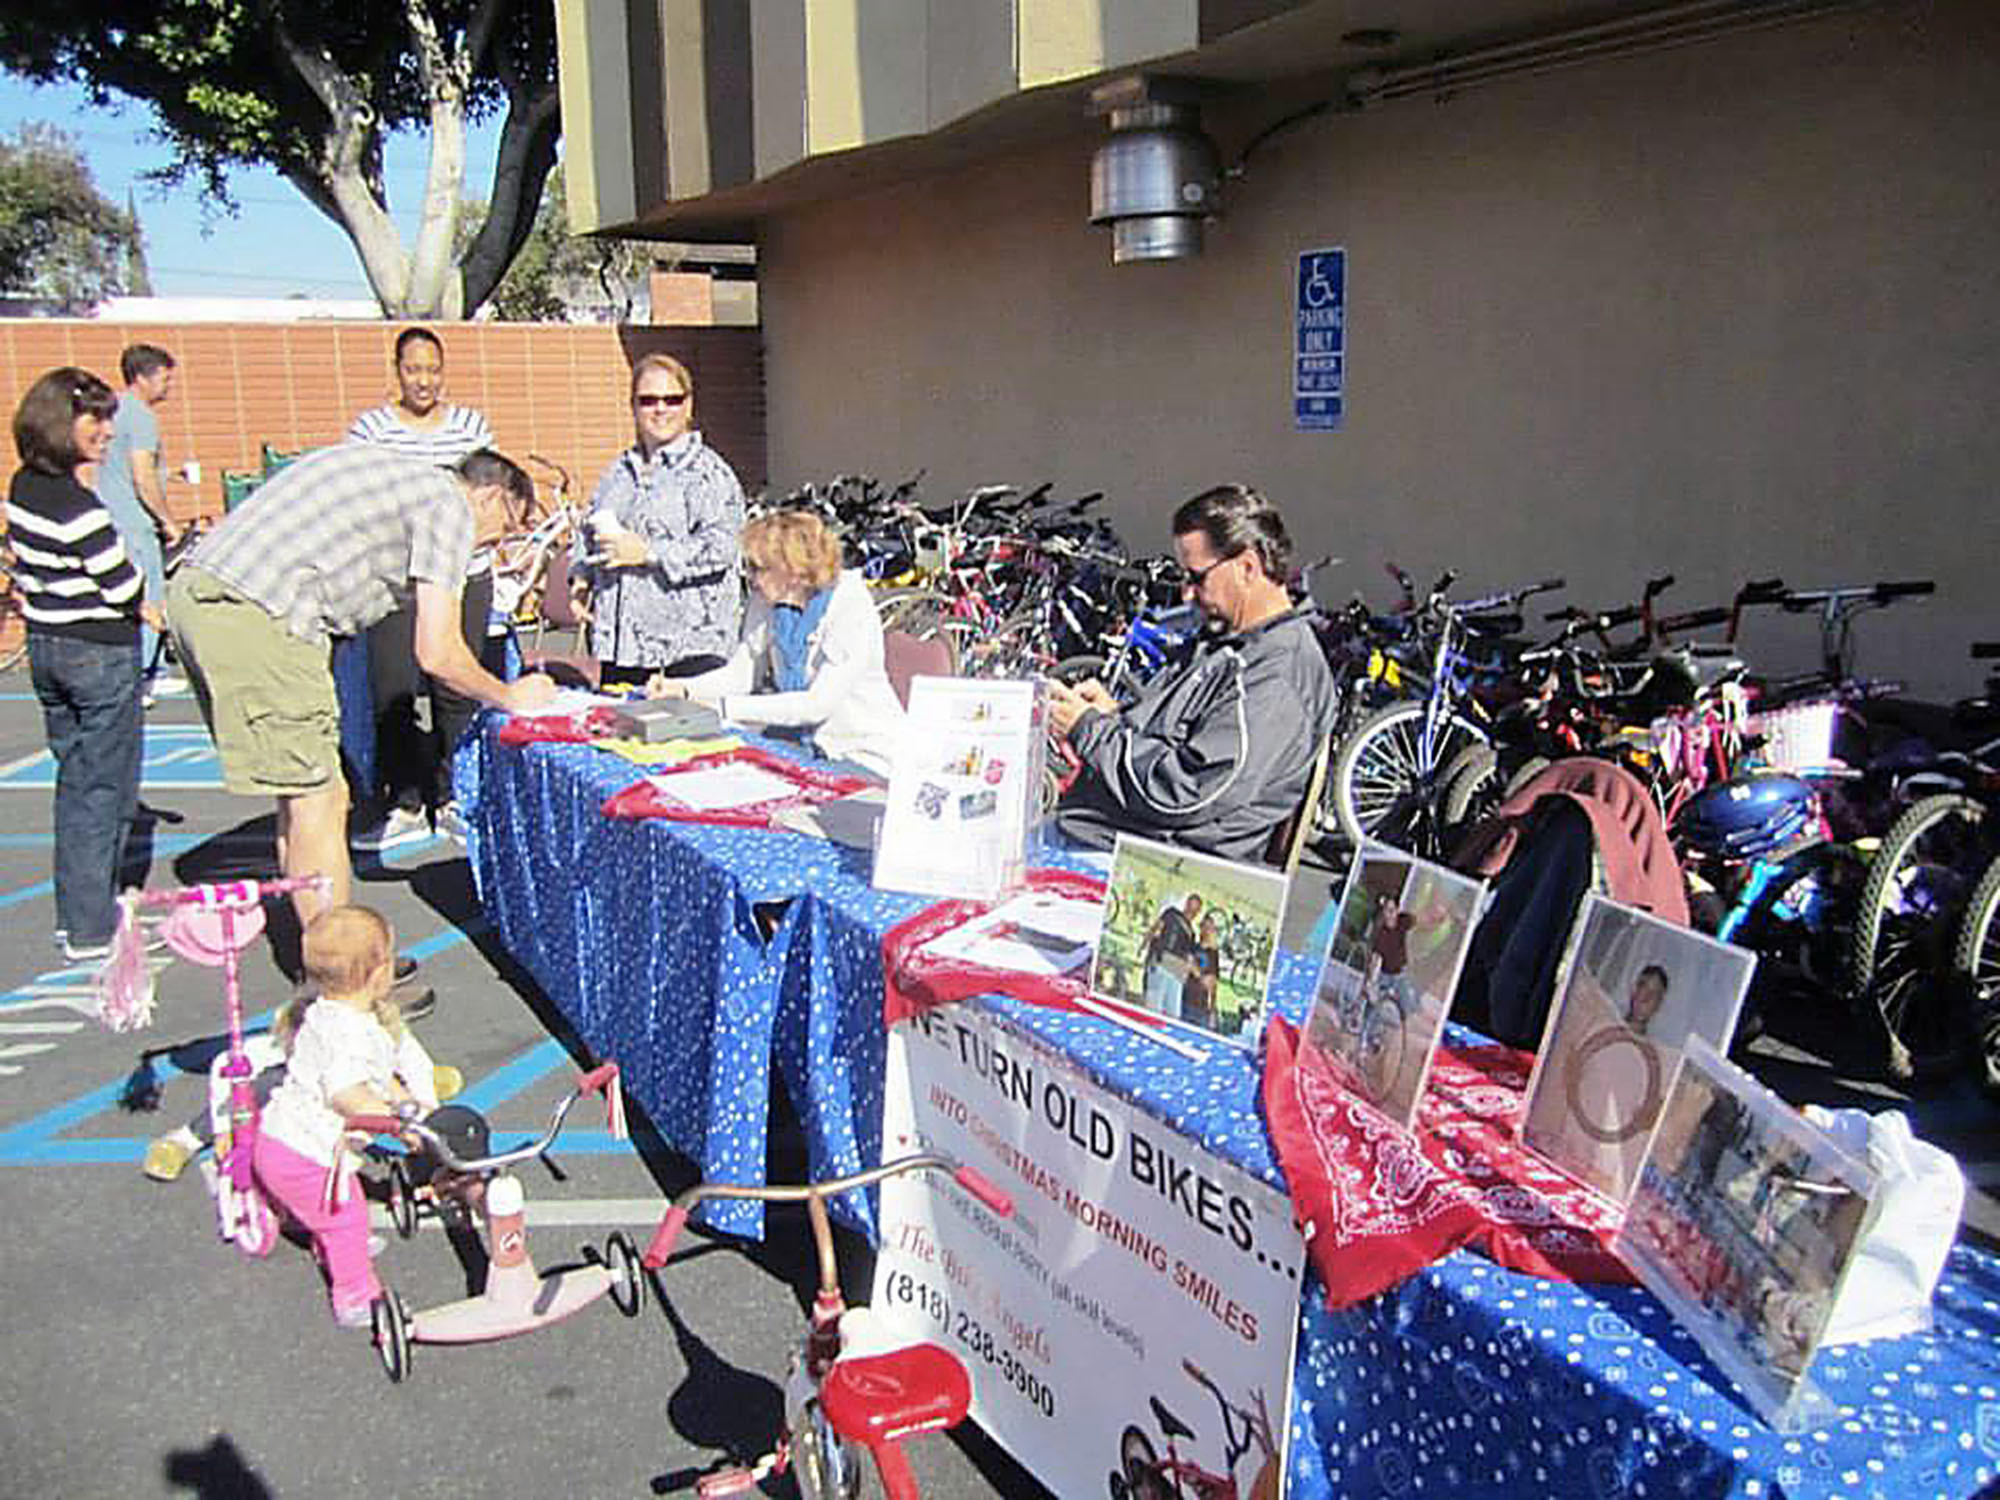 The Burbank Assn. of Realtors Community Service Foundation held its inaugural bicycle drive last month, collecting more than 100 bikes and $1,000 in cash that were then donated to Burbank Bike Angels, a volunteer group that refurbishes donated bikes and gives them to children in the community.